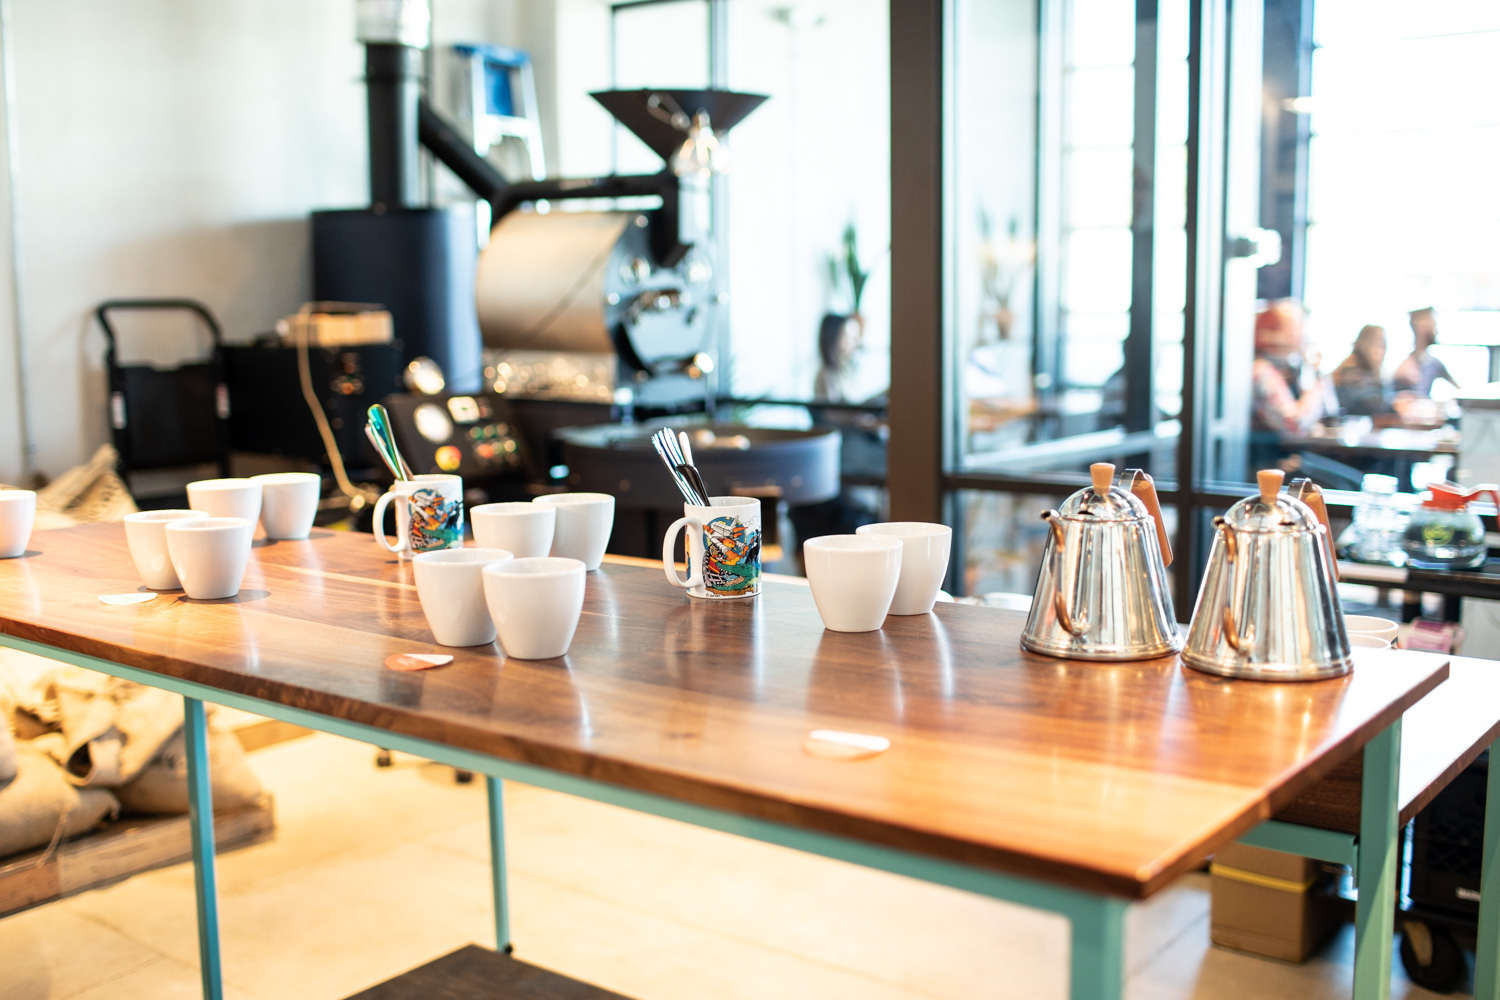 Preparing the coffee cupping event at East Pole.